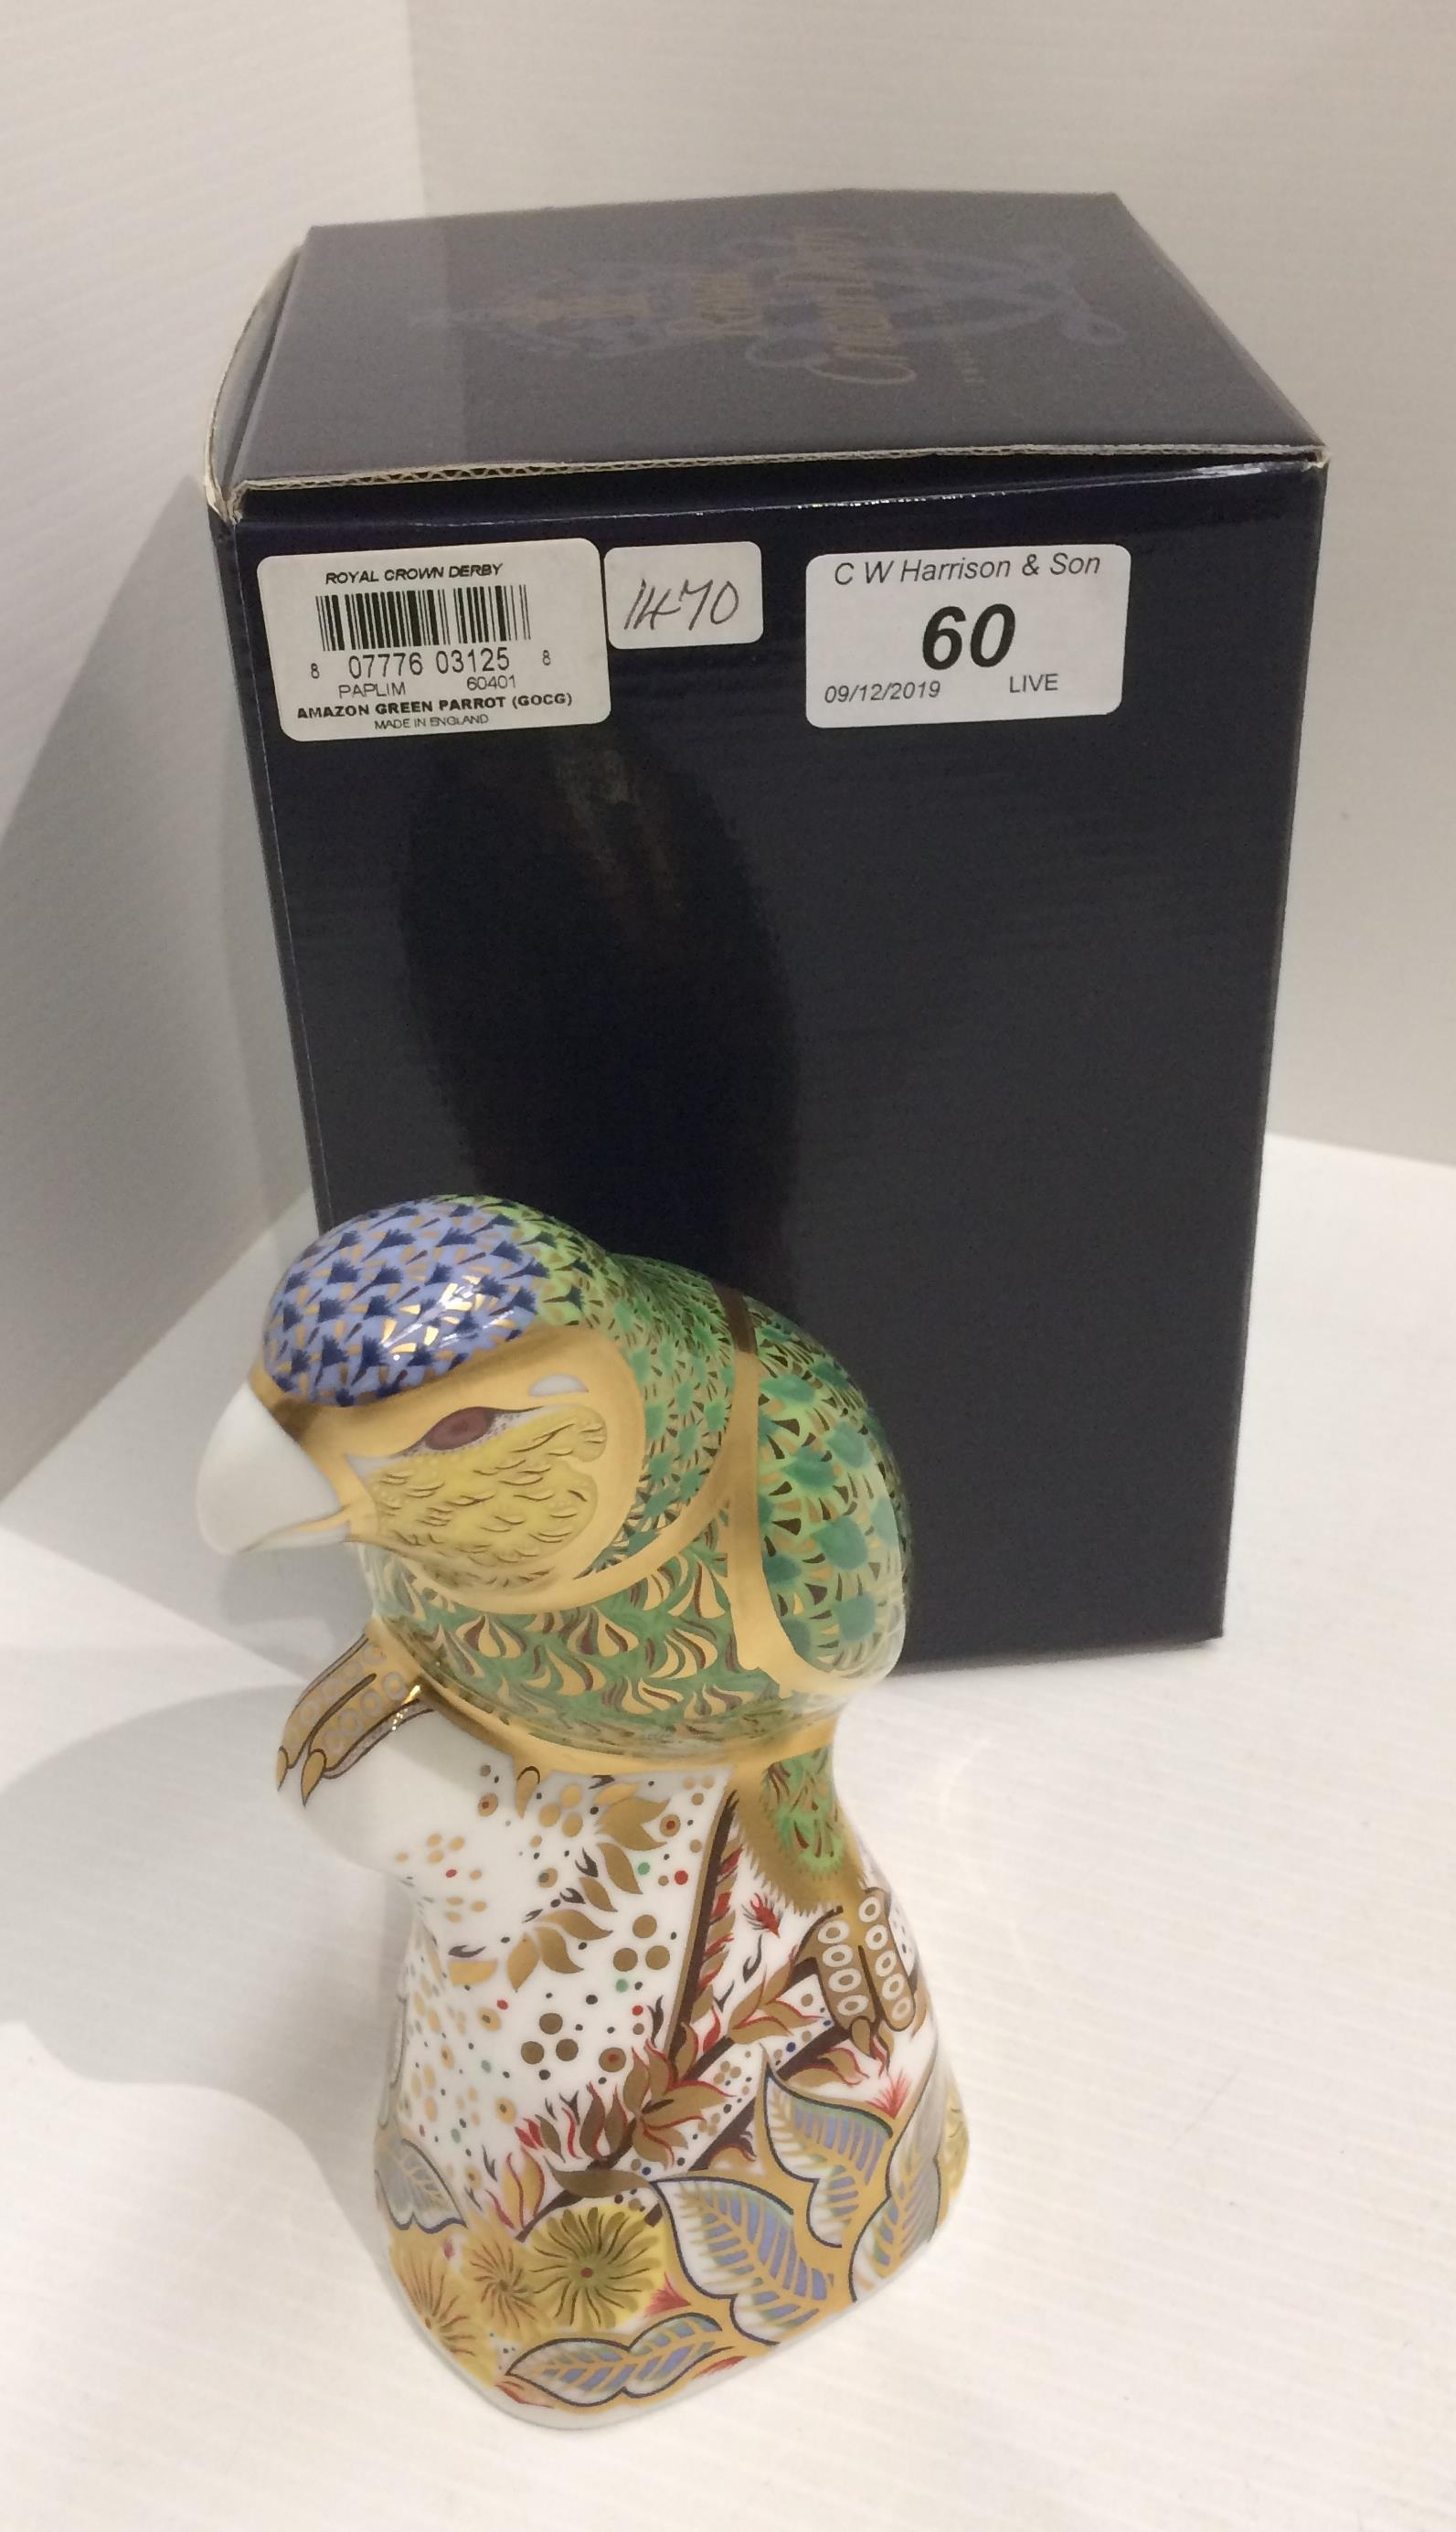 Lot 60 - A Royal Crown Derby bone china specially commissioned edition Amazon Green Parrot paperweight -